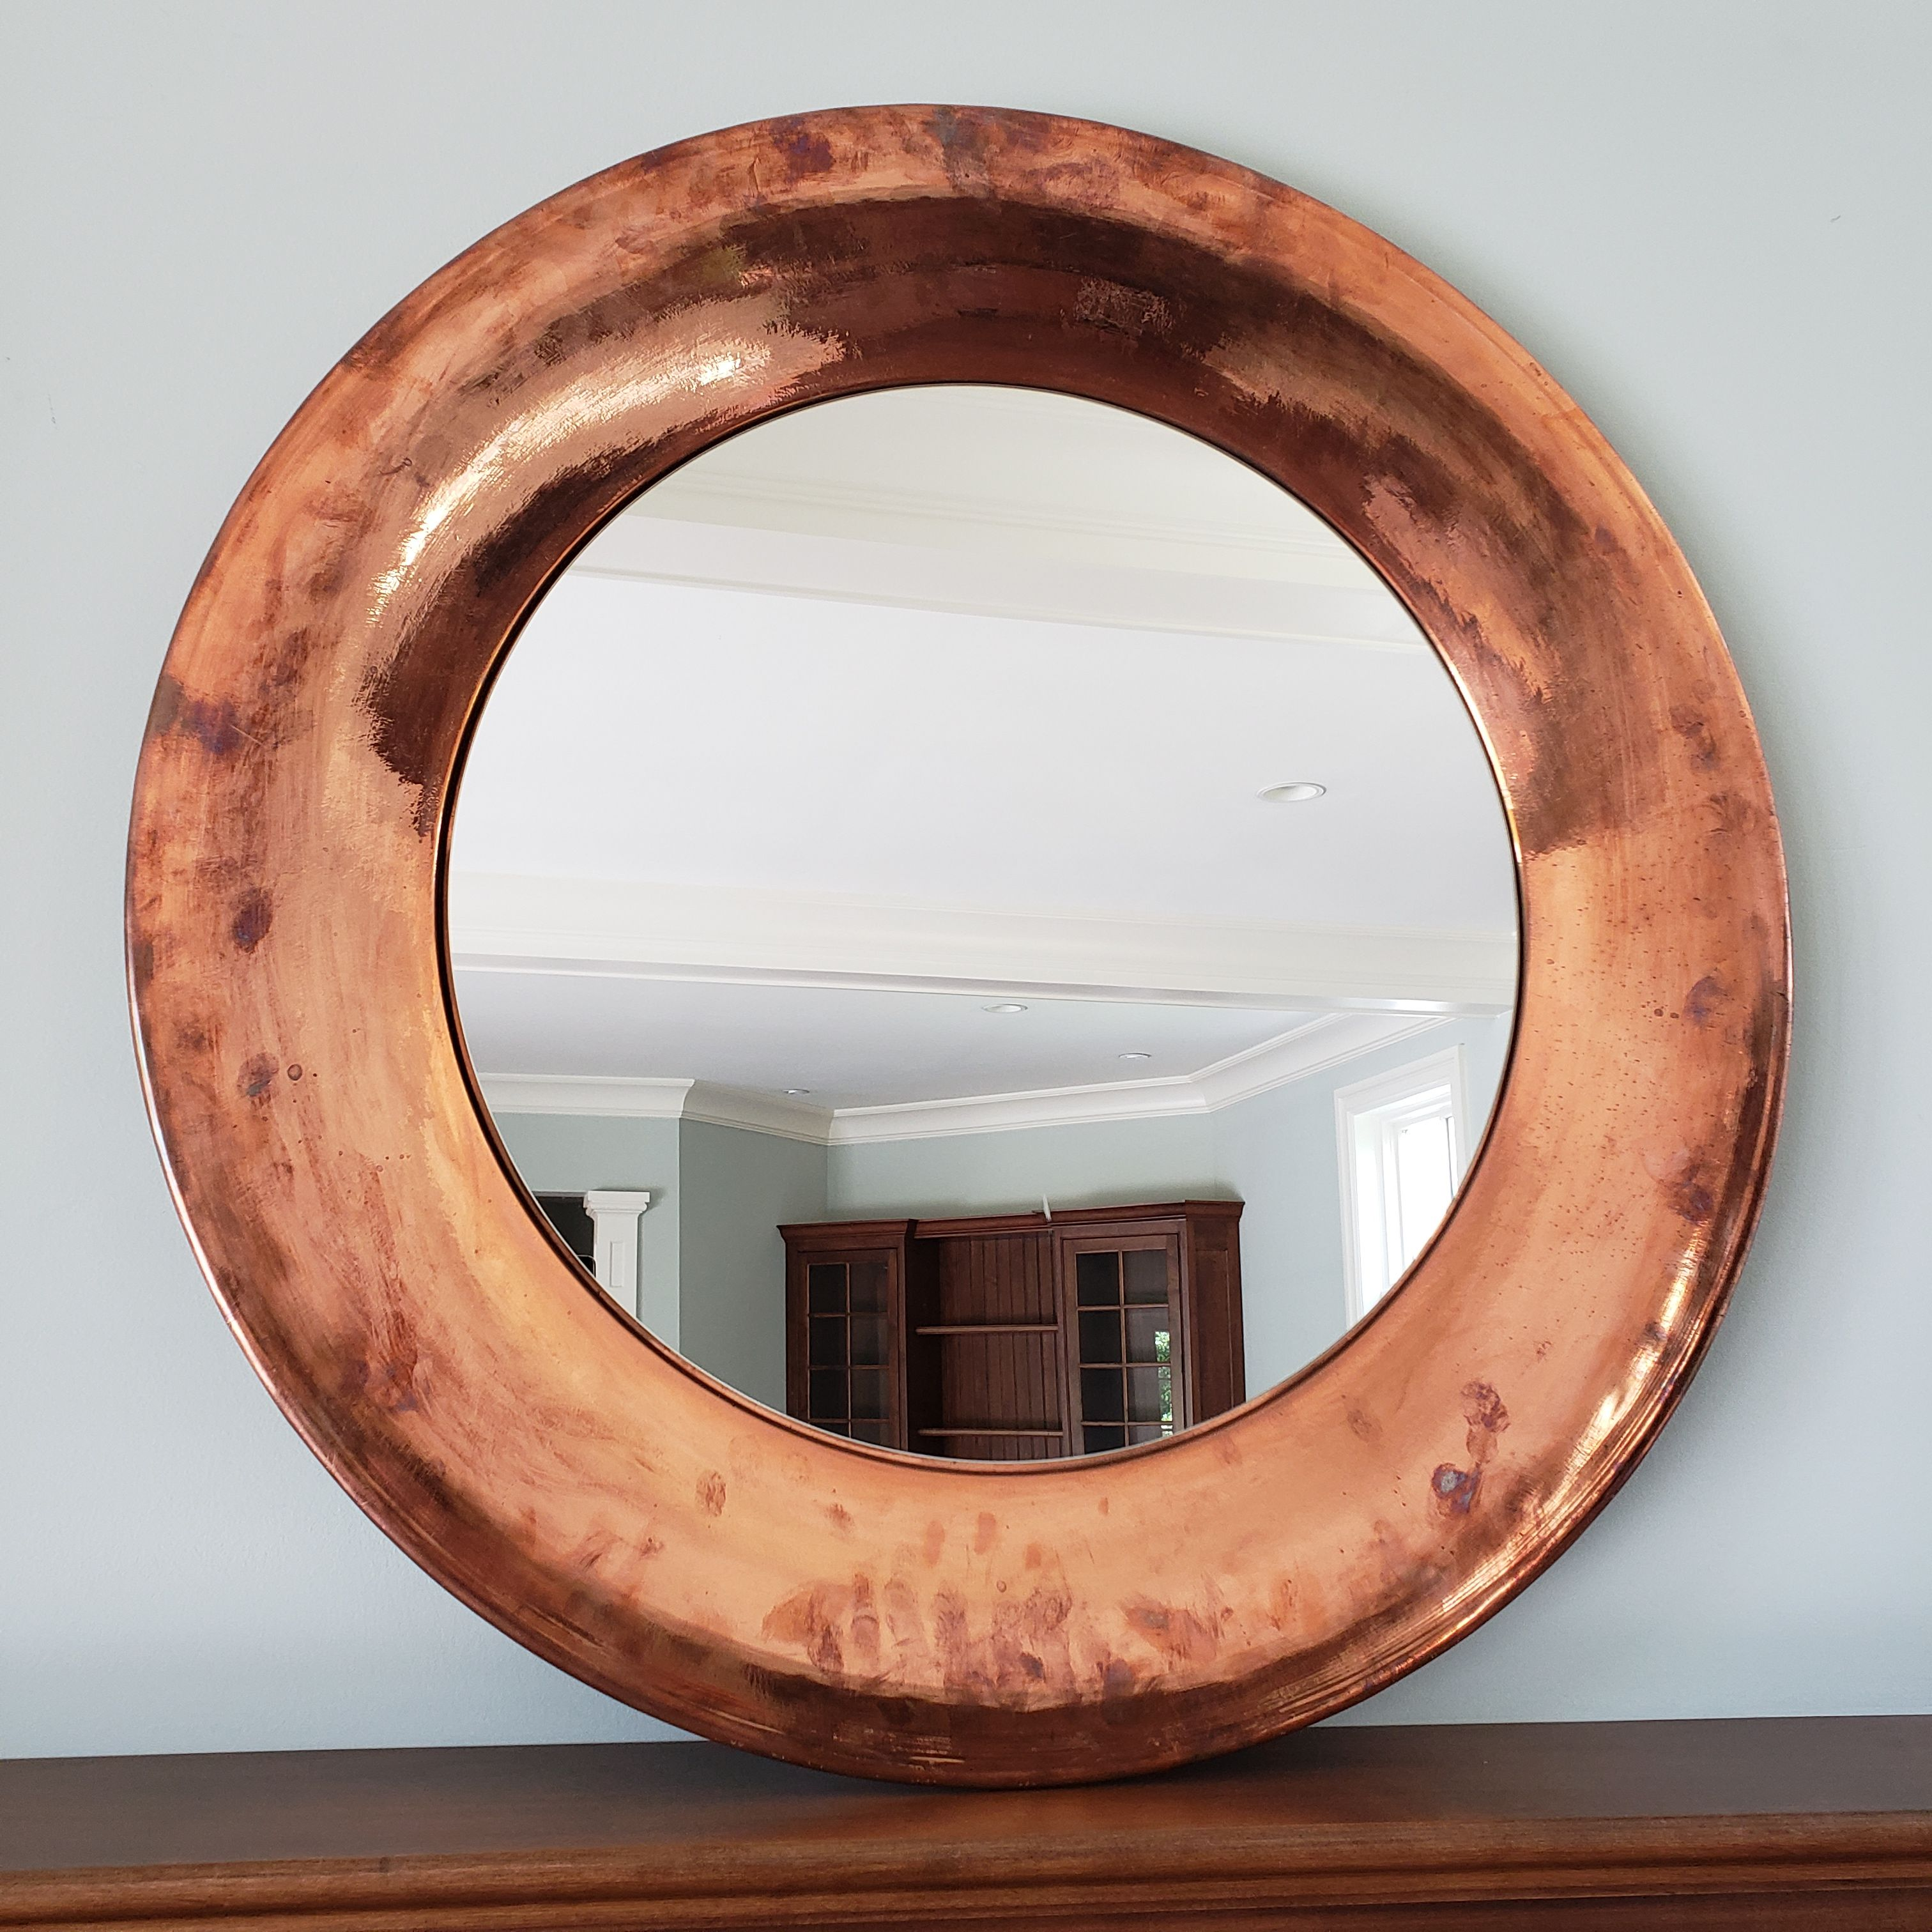 This Very Large Copper Mirror Would Make A Statement In Any Room Available This Sunday In Lower Gwynedd Mirror Copper Copper Mirror Mirror Estate Sale Finds